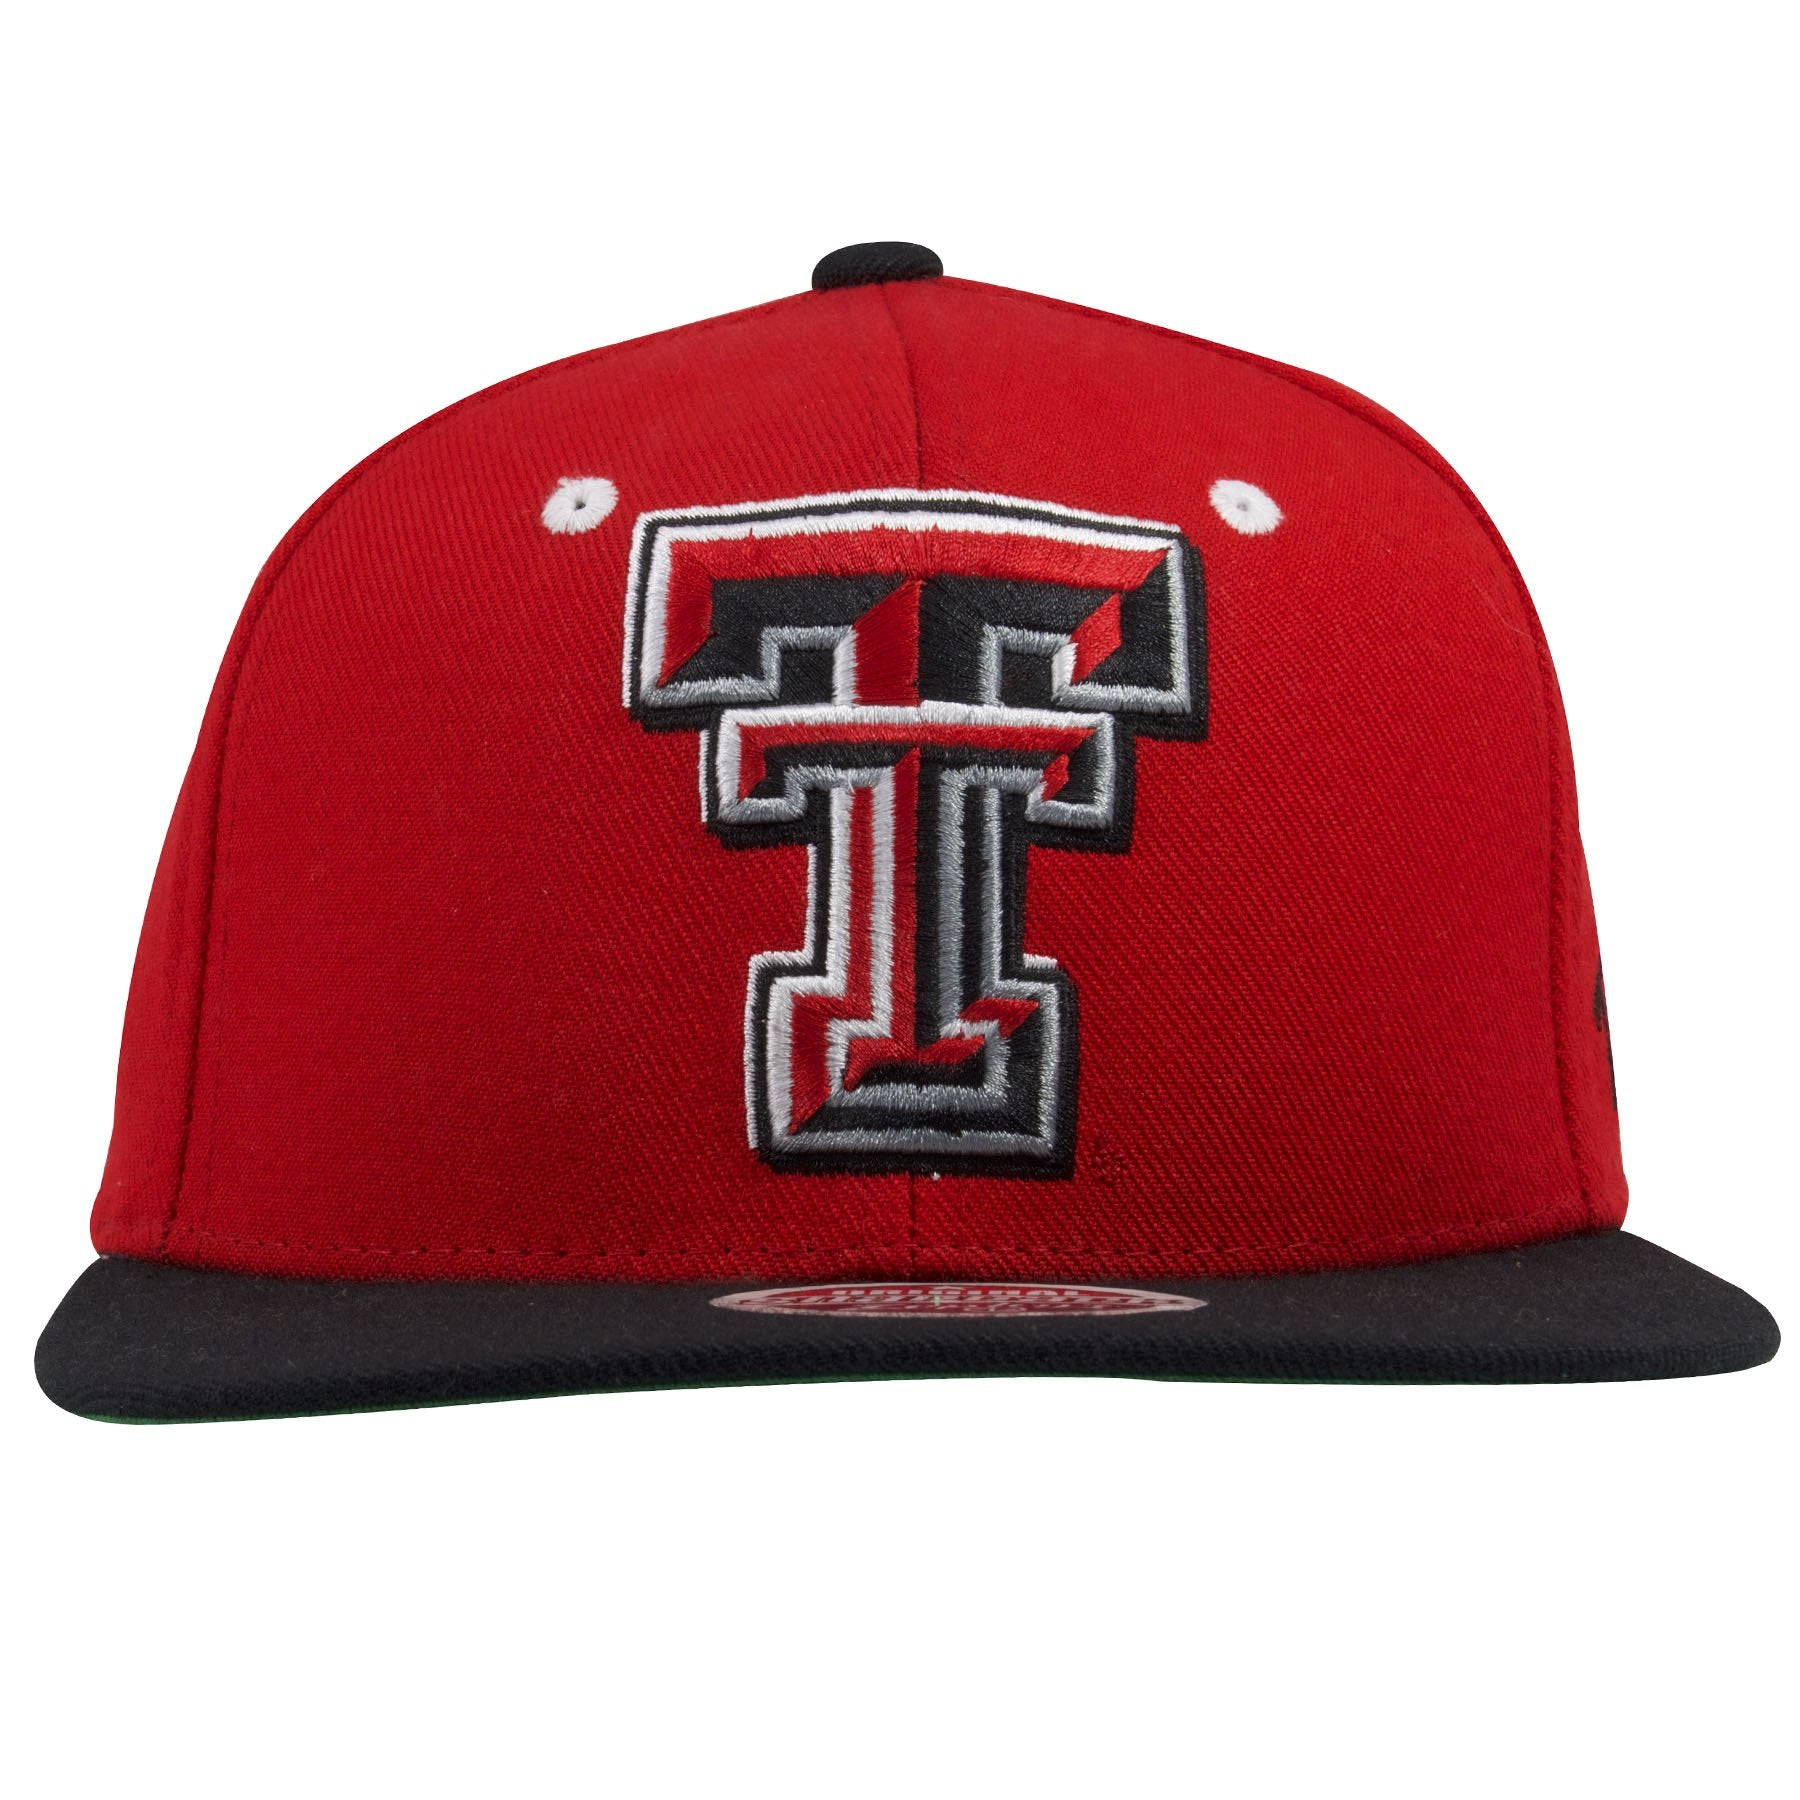 on the front of the texas tech red raiders snapback hat is the texas tech  logo 96ccd7749aea